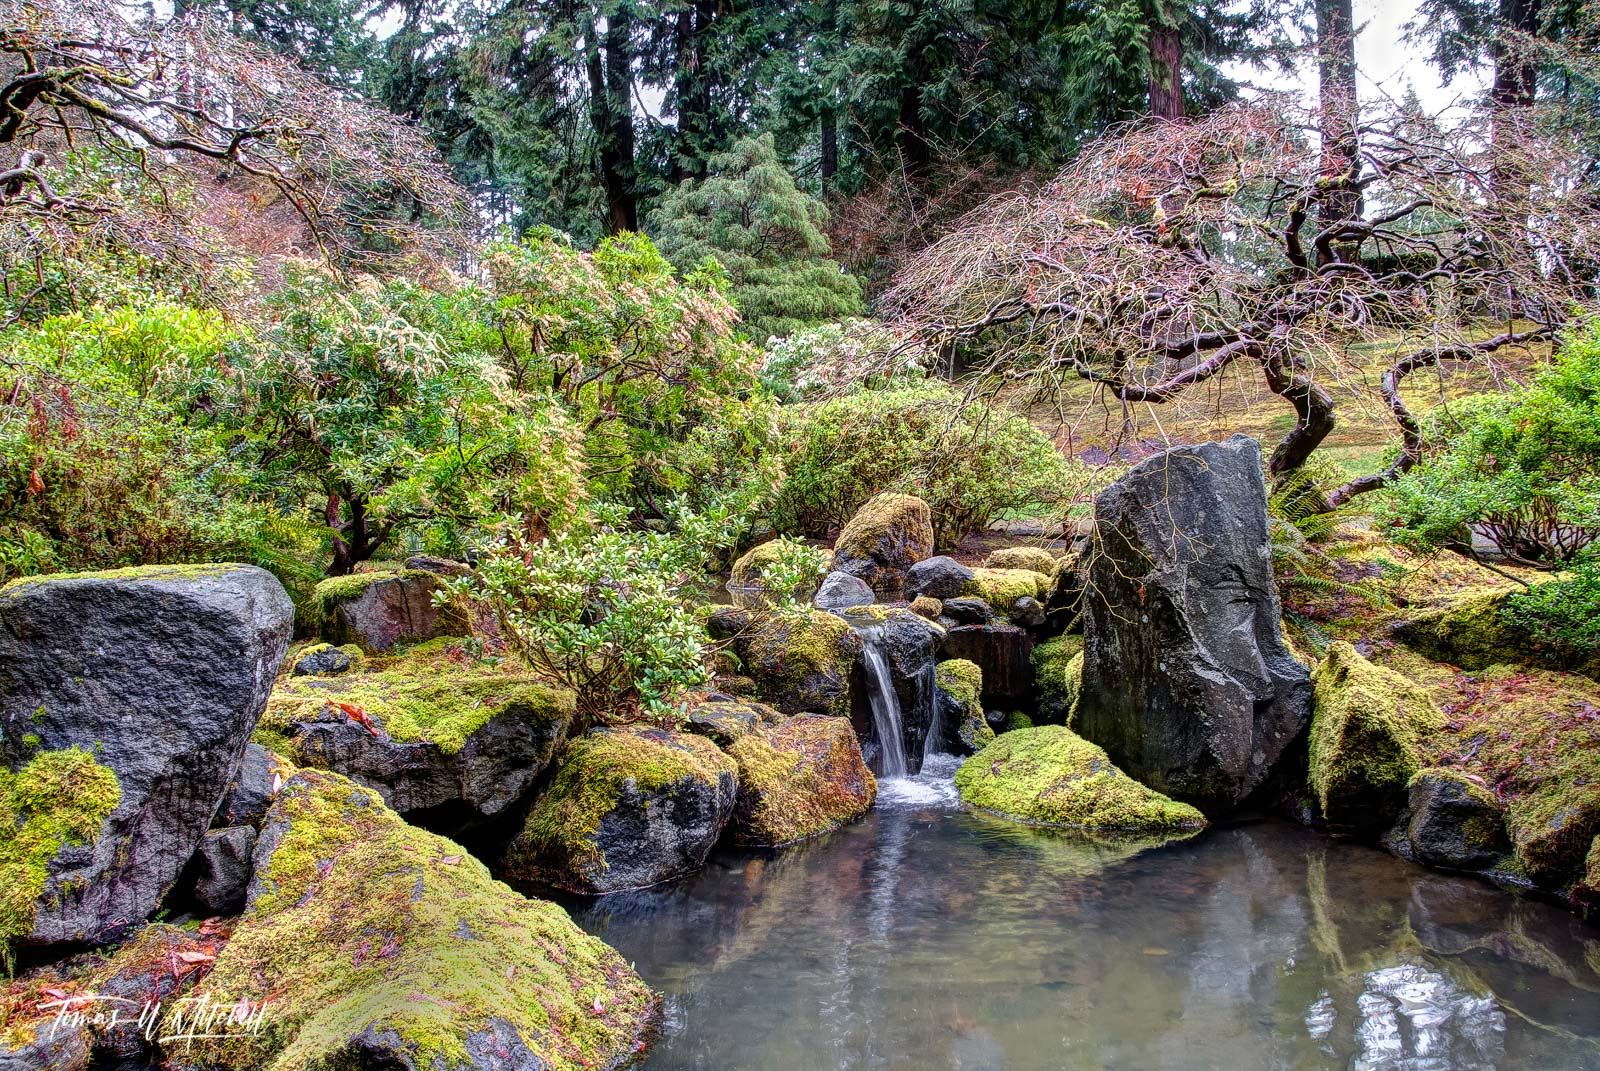 limited edition, fine art, prints, japanese garden, portland oregon, serenity, spring, tree, moss, green, rocks, photograph, pond, water fall, photo